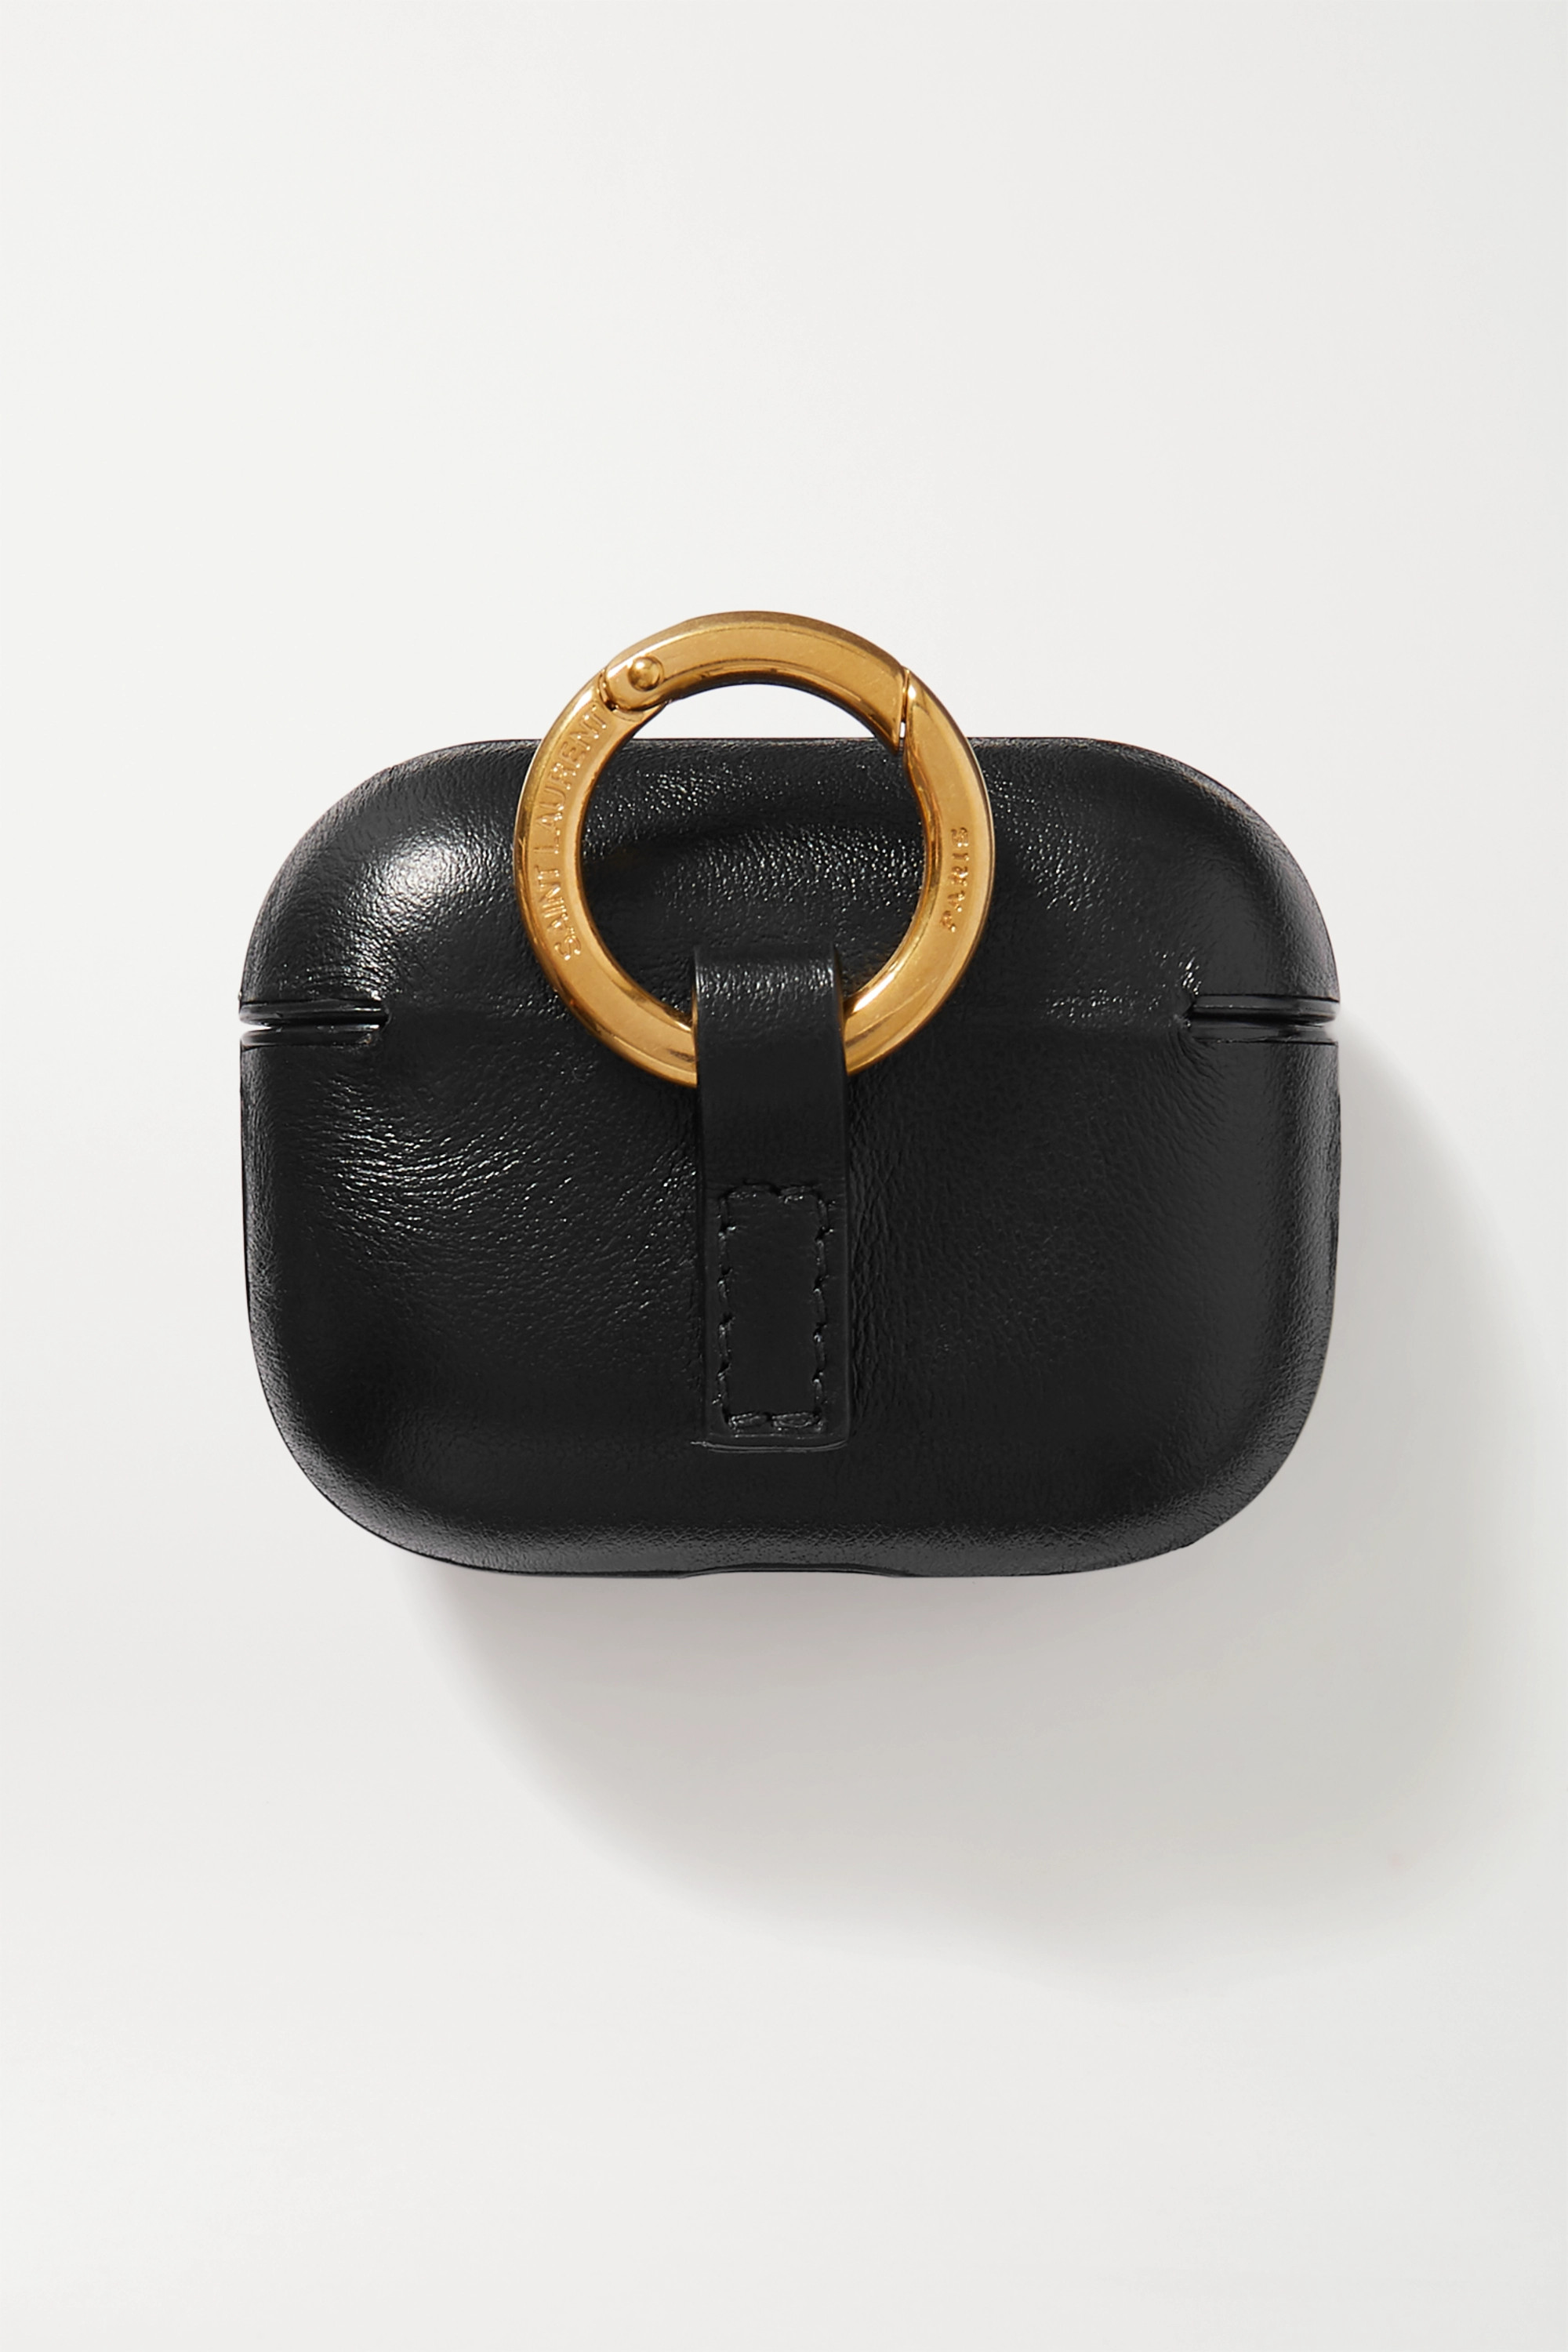 SAINT LAURENT Printed leather AirPods case